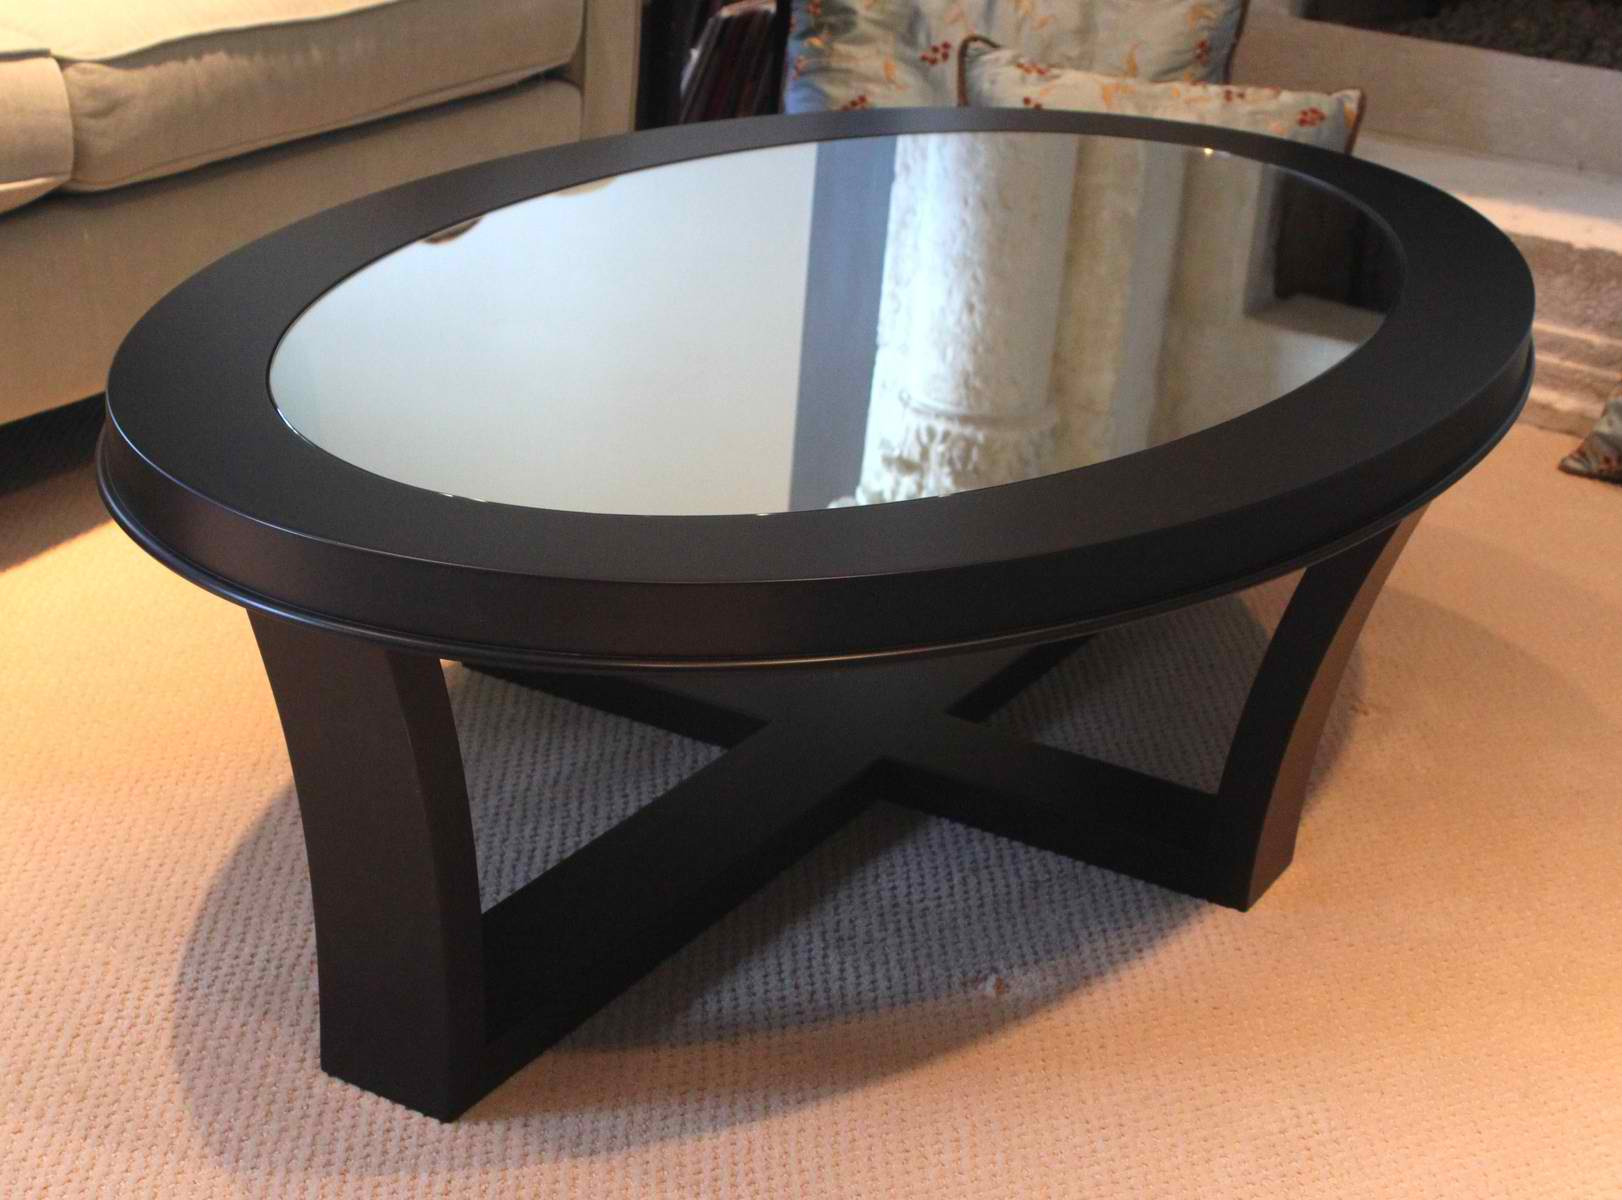 10 Best Living Room Glass Coffee Table With Storage